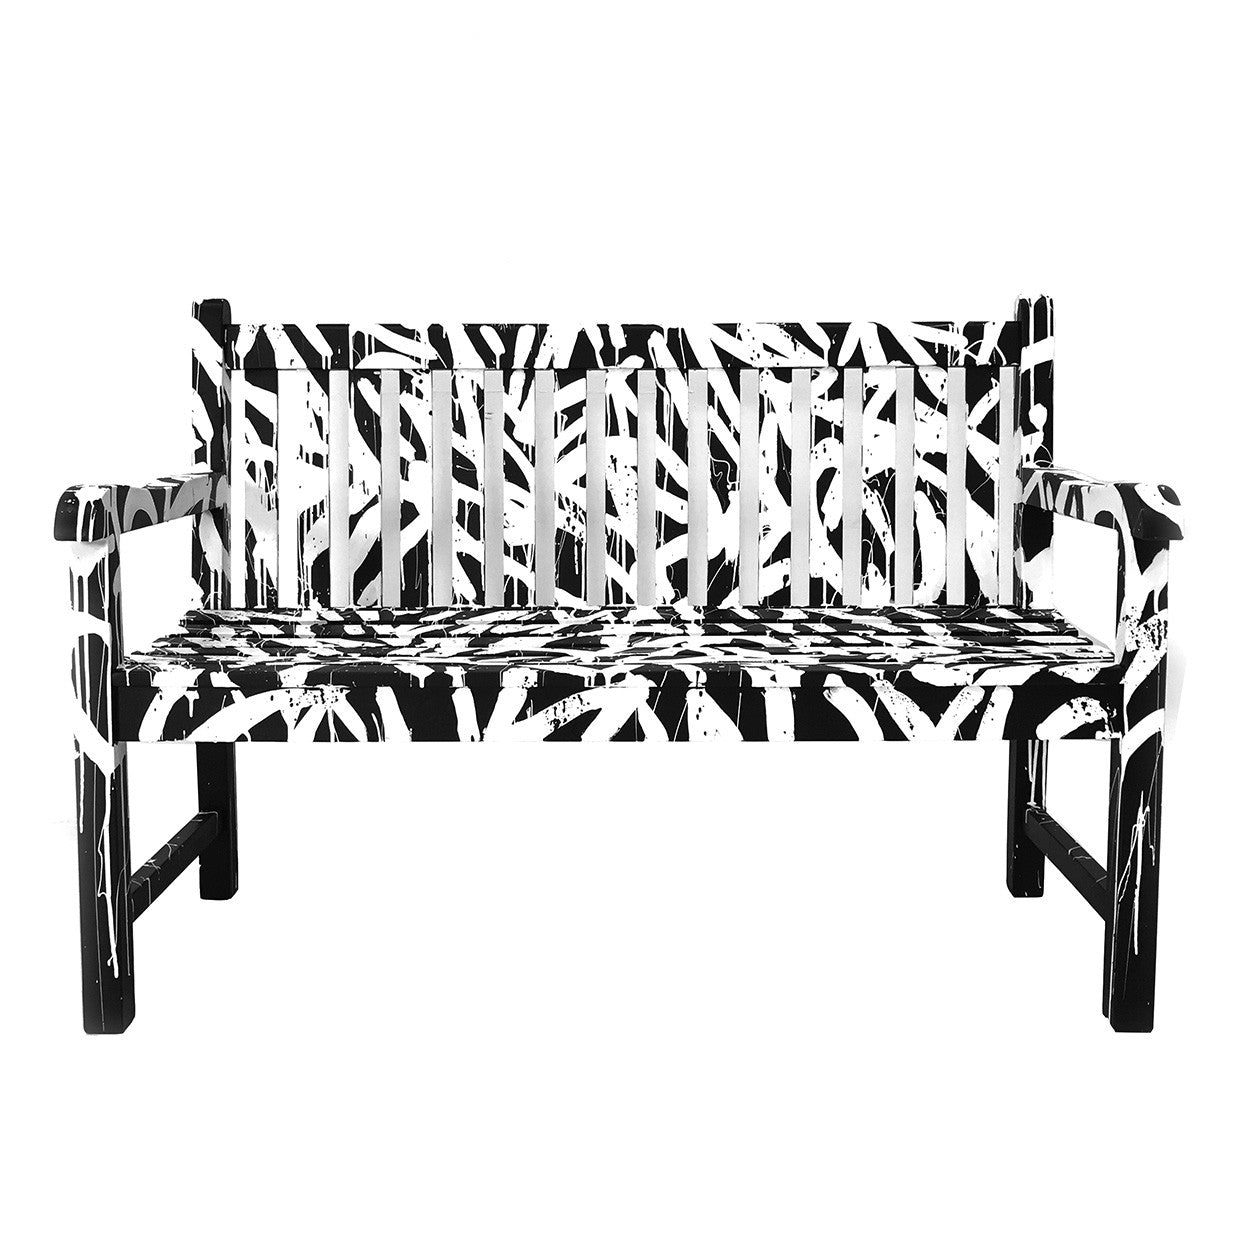 Writers Bench - 48 x 24 x 36 - Bisco Smith